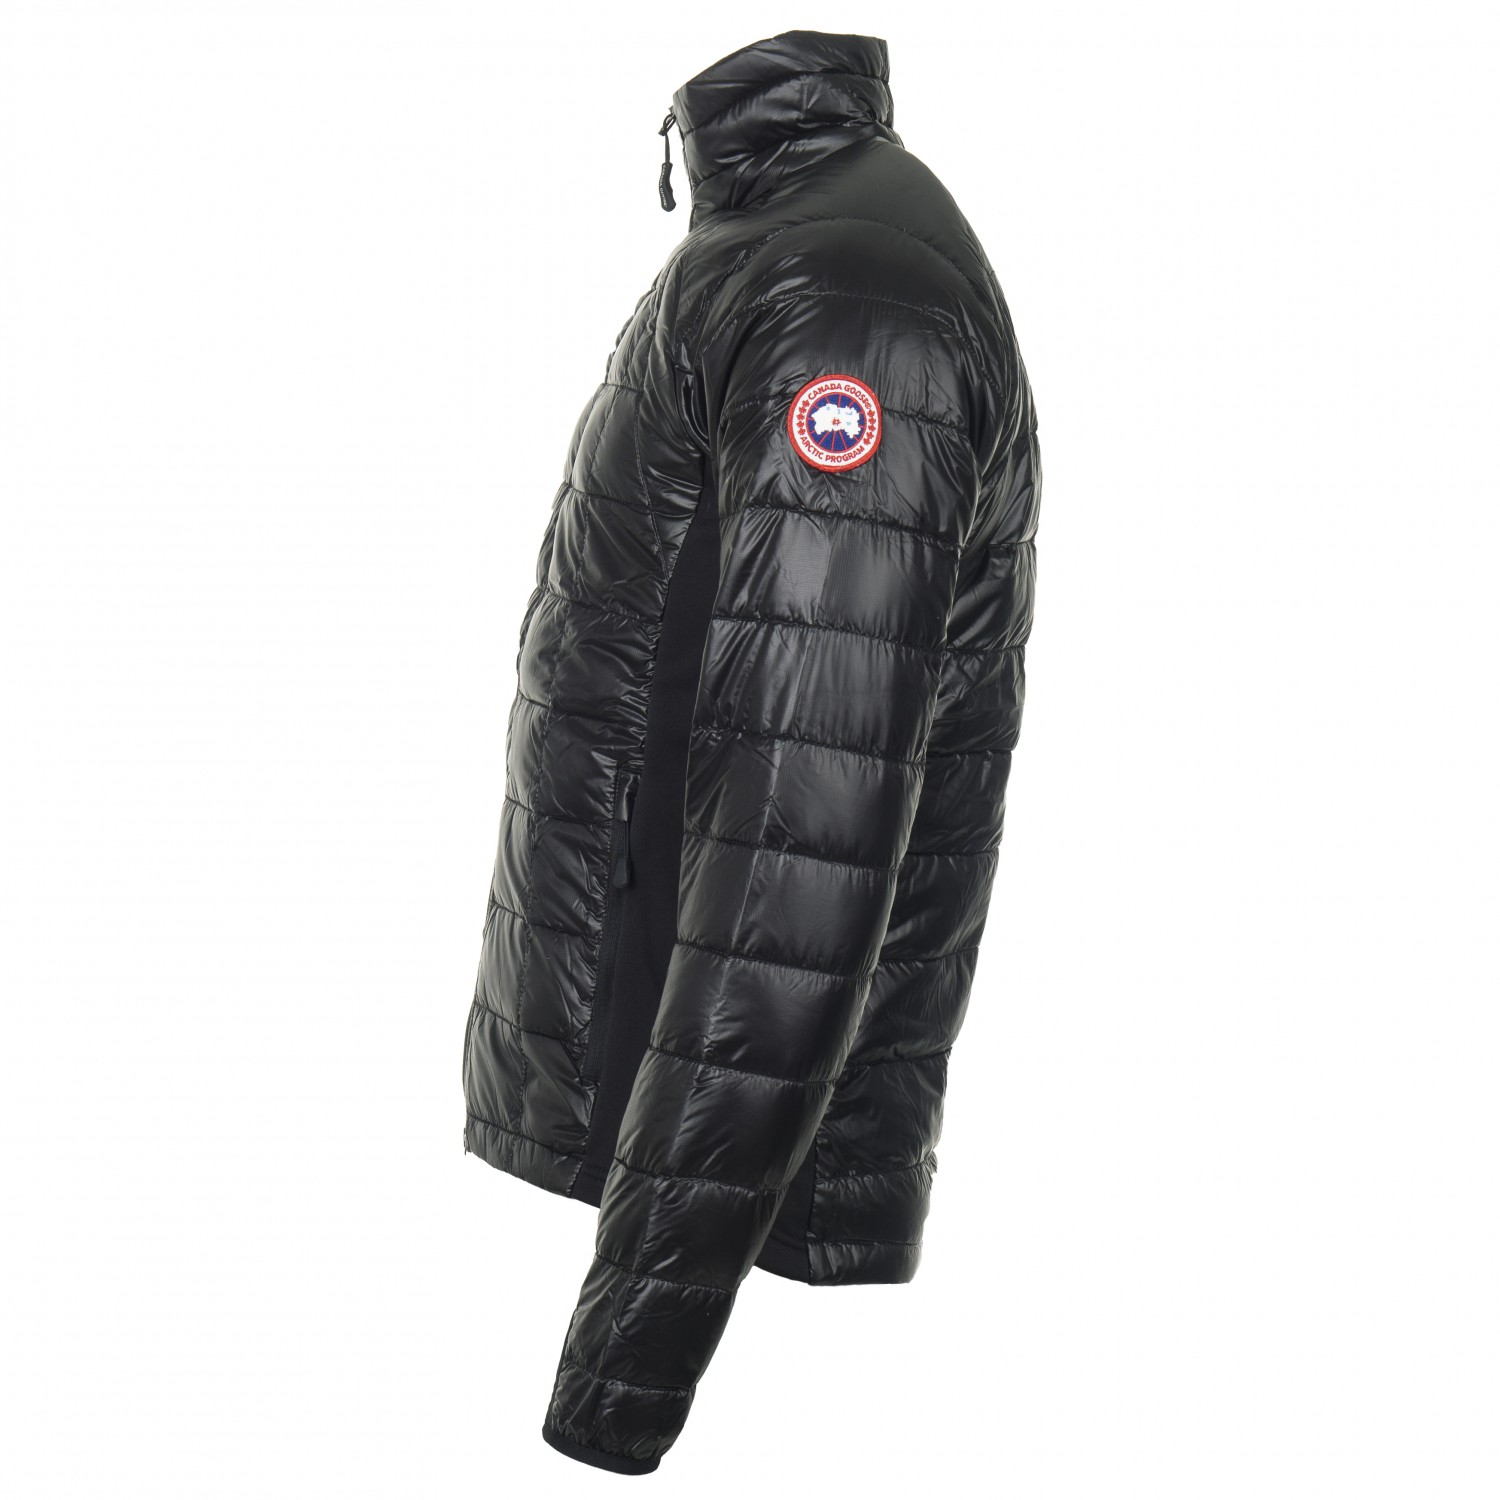 619fef0036 Canada Goose Hybridge Lite Jacket - Winter Jacket Men's | Free UK ...